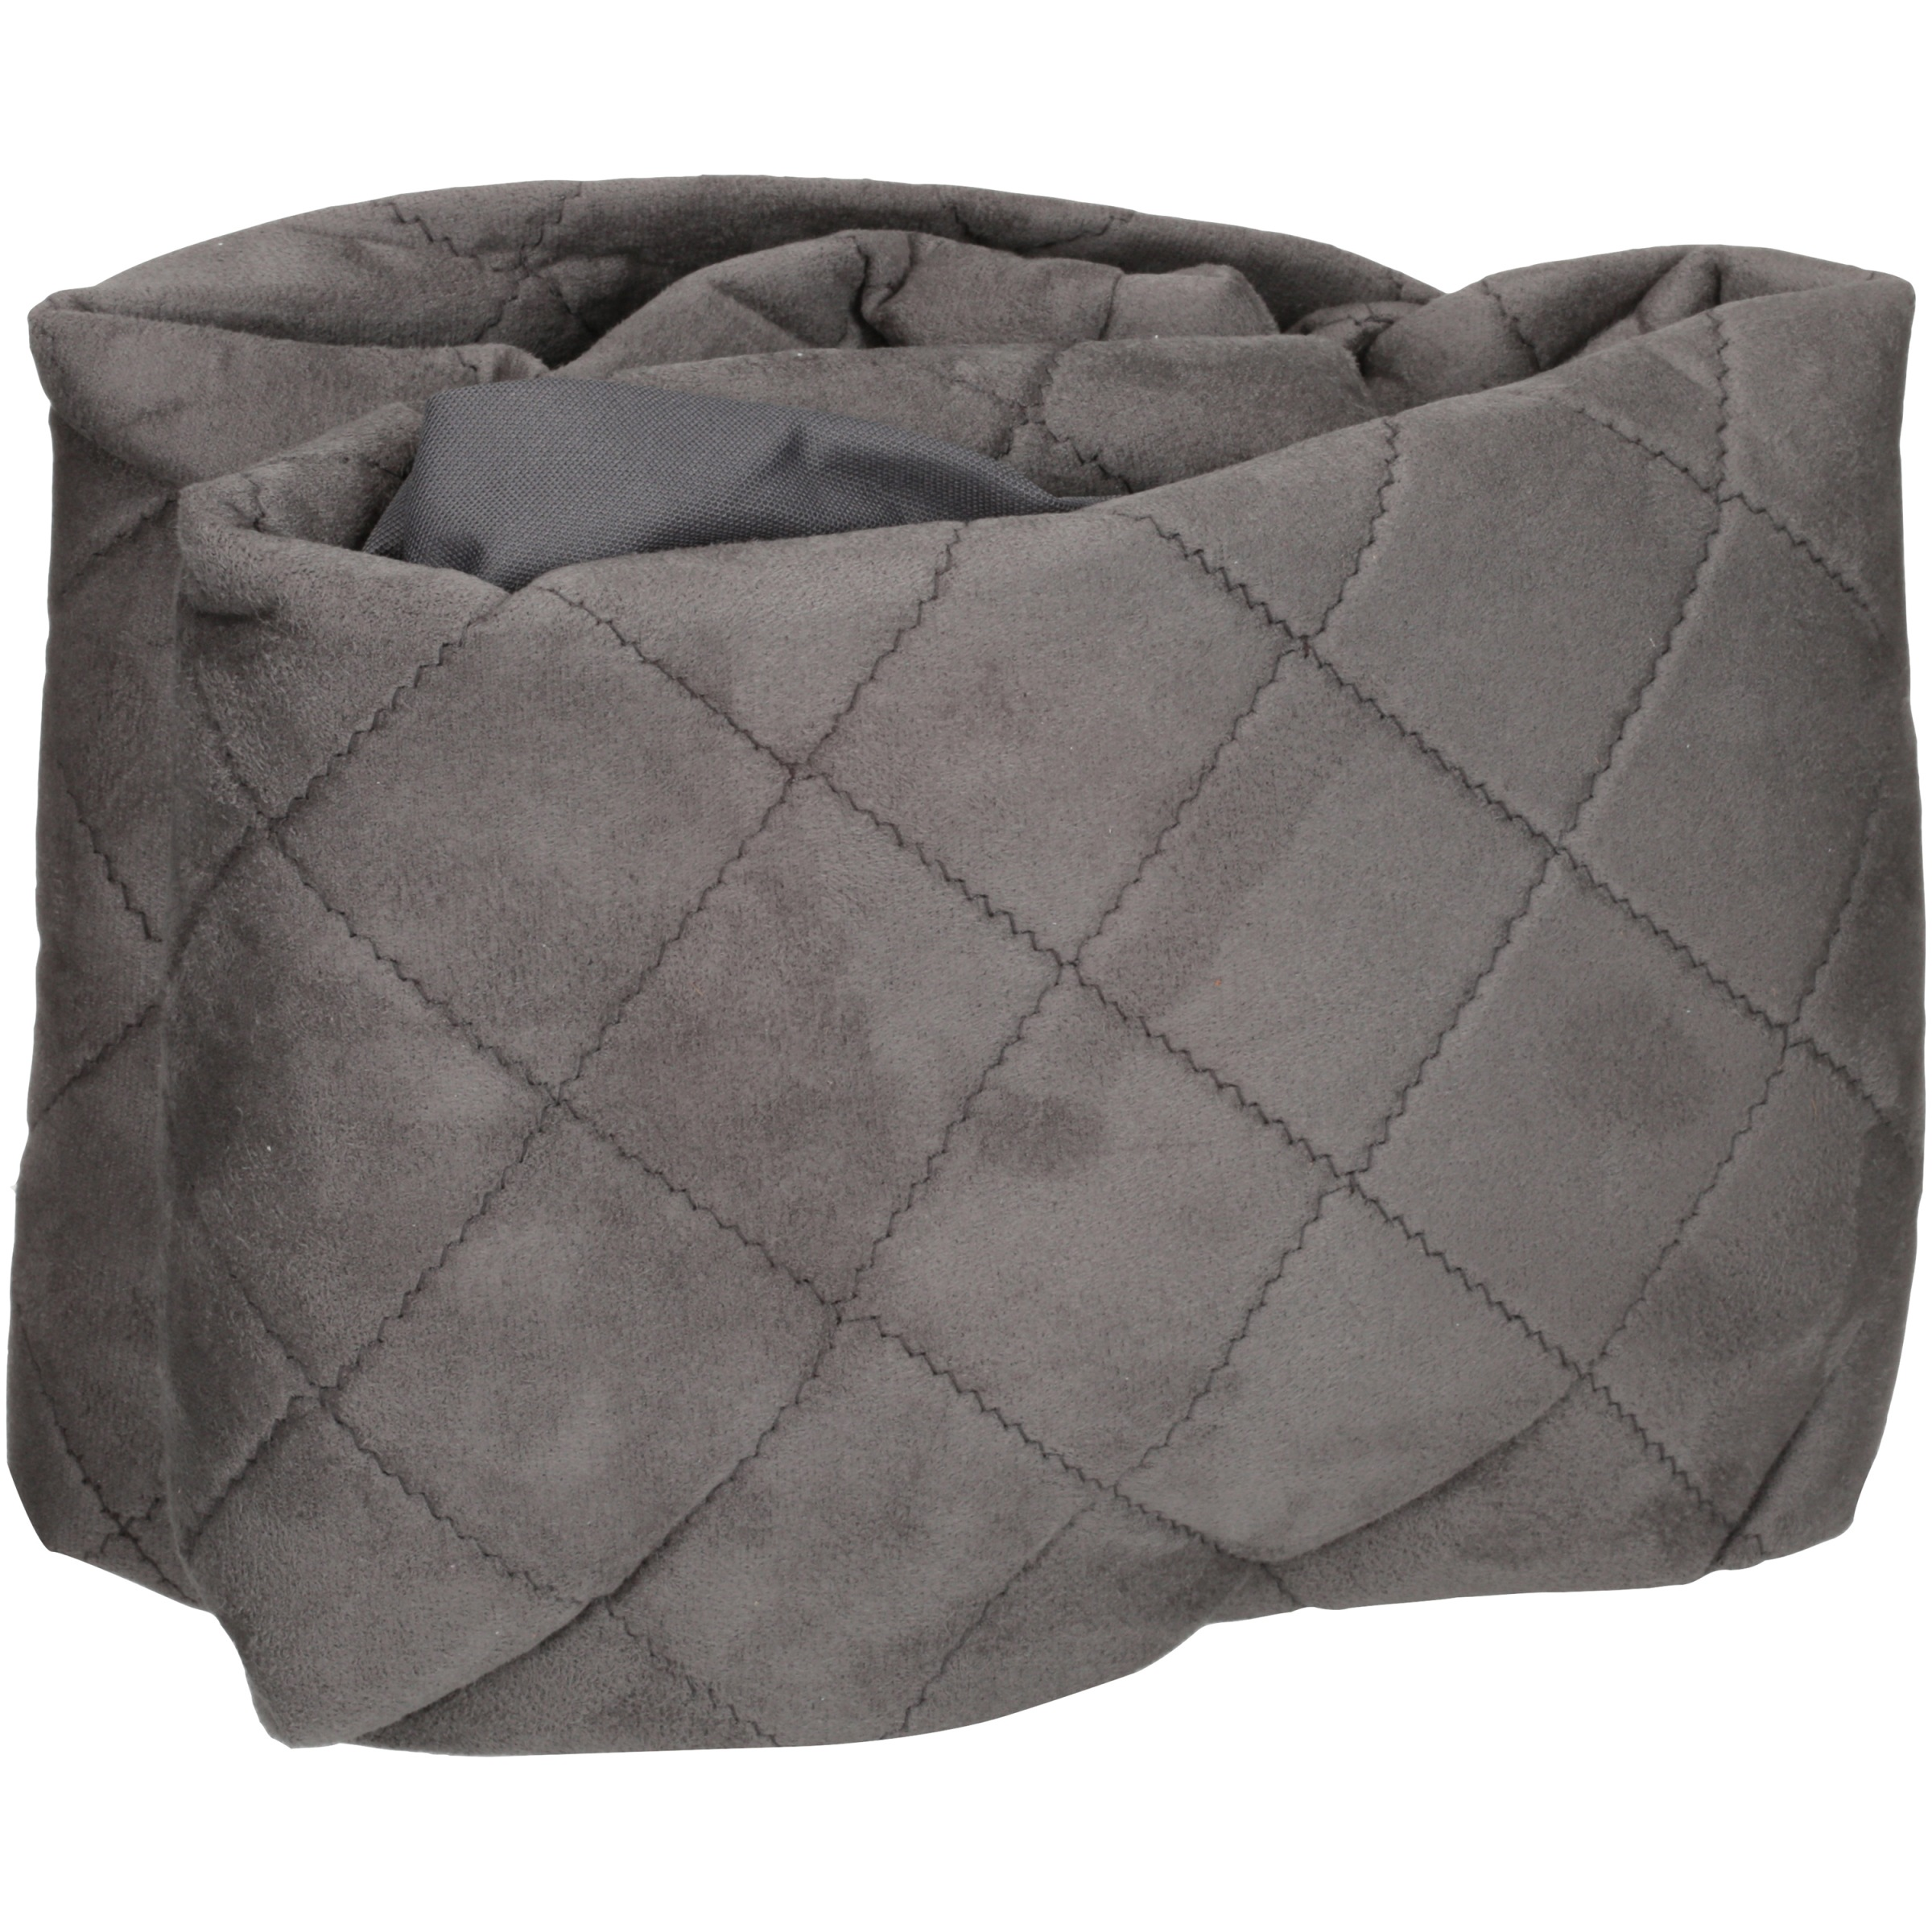 Bell® Quilted Suede Gray Seat Cover Box